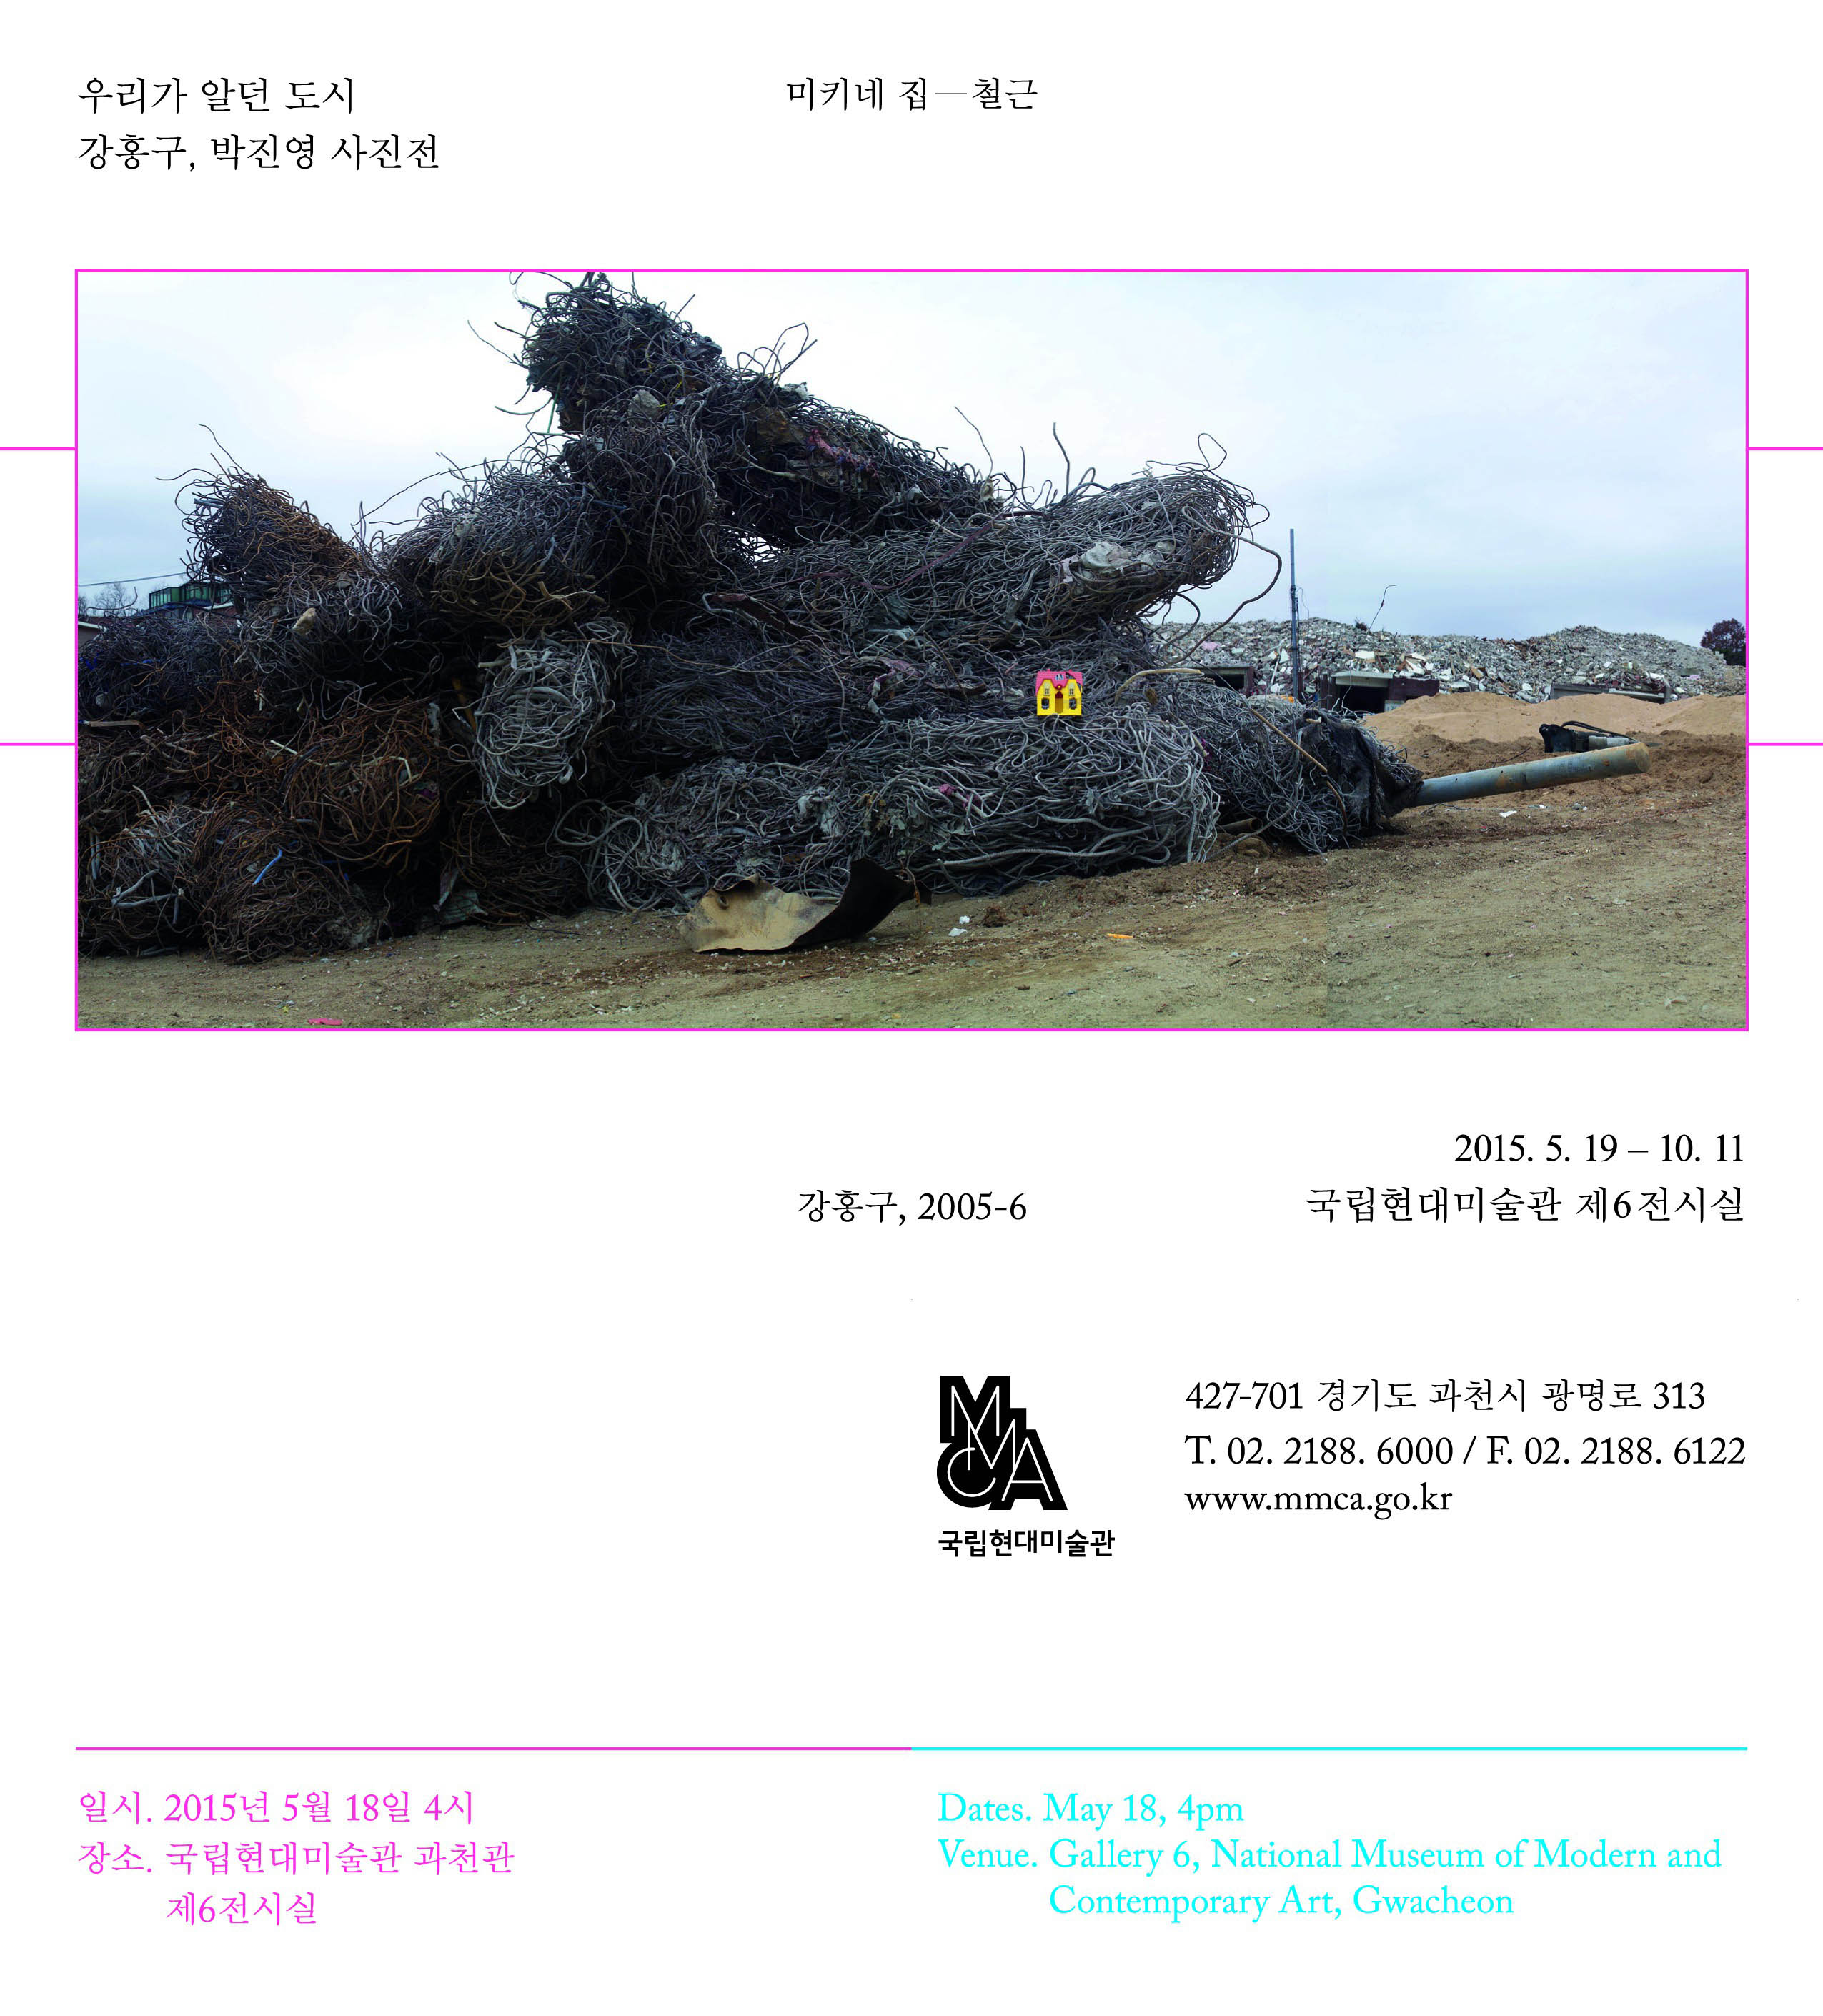 City We have known - Photographs by Kang Hong Goo and Area Park